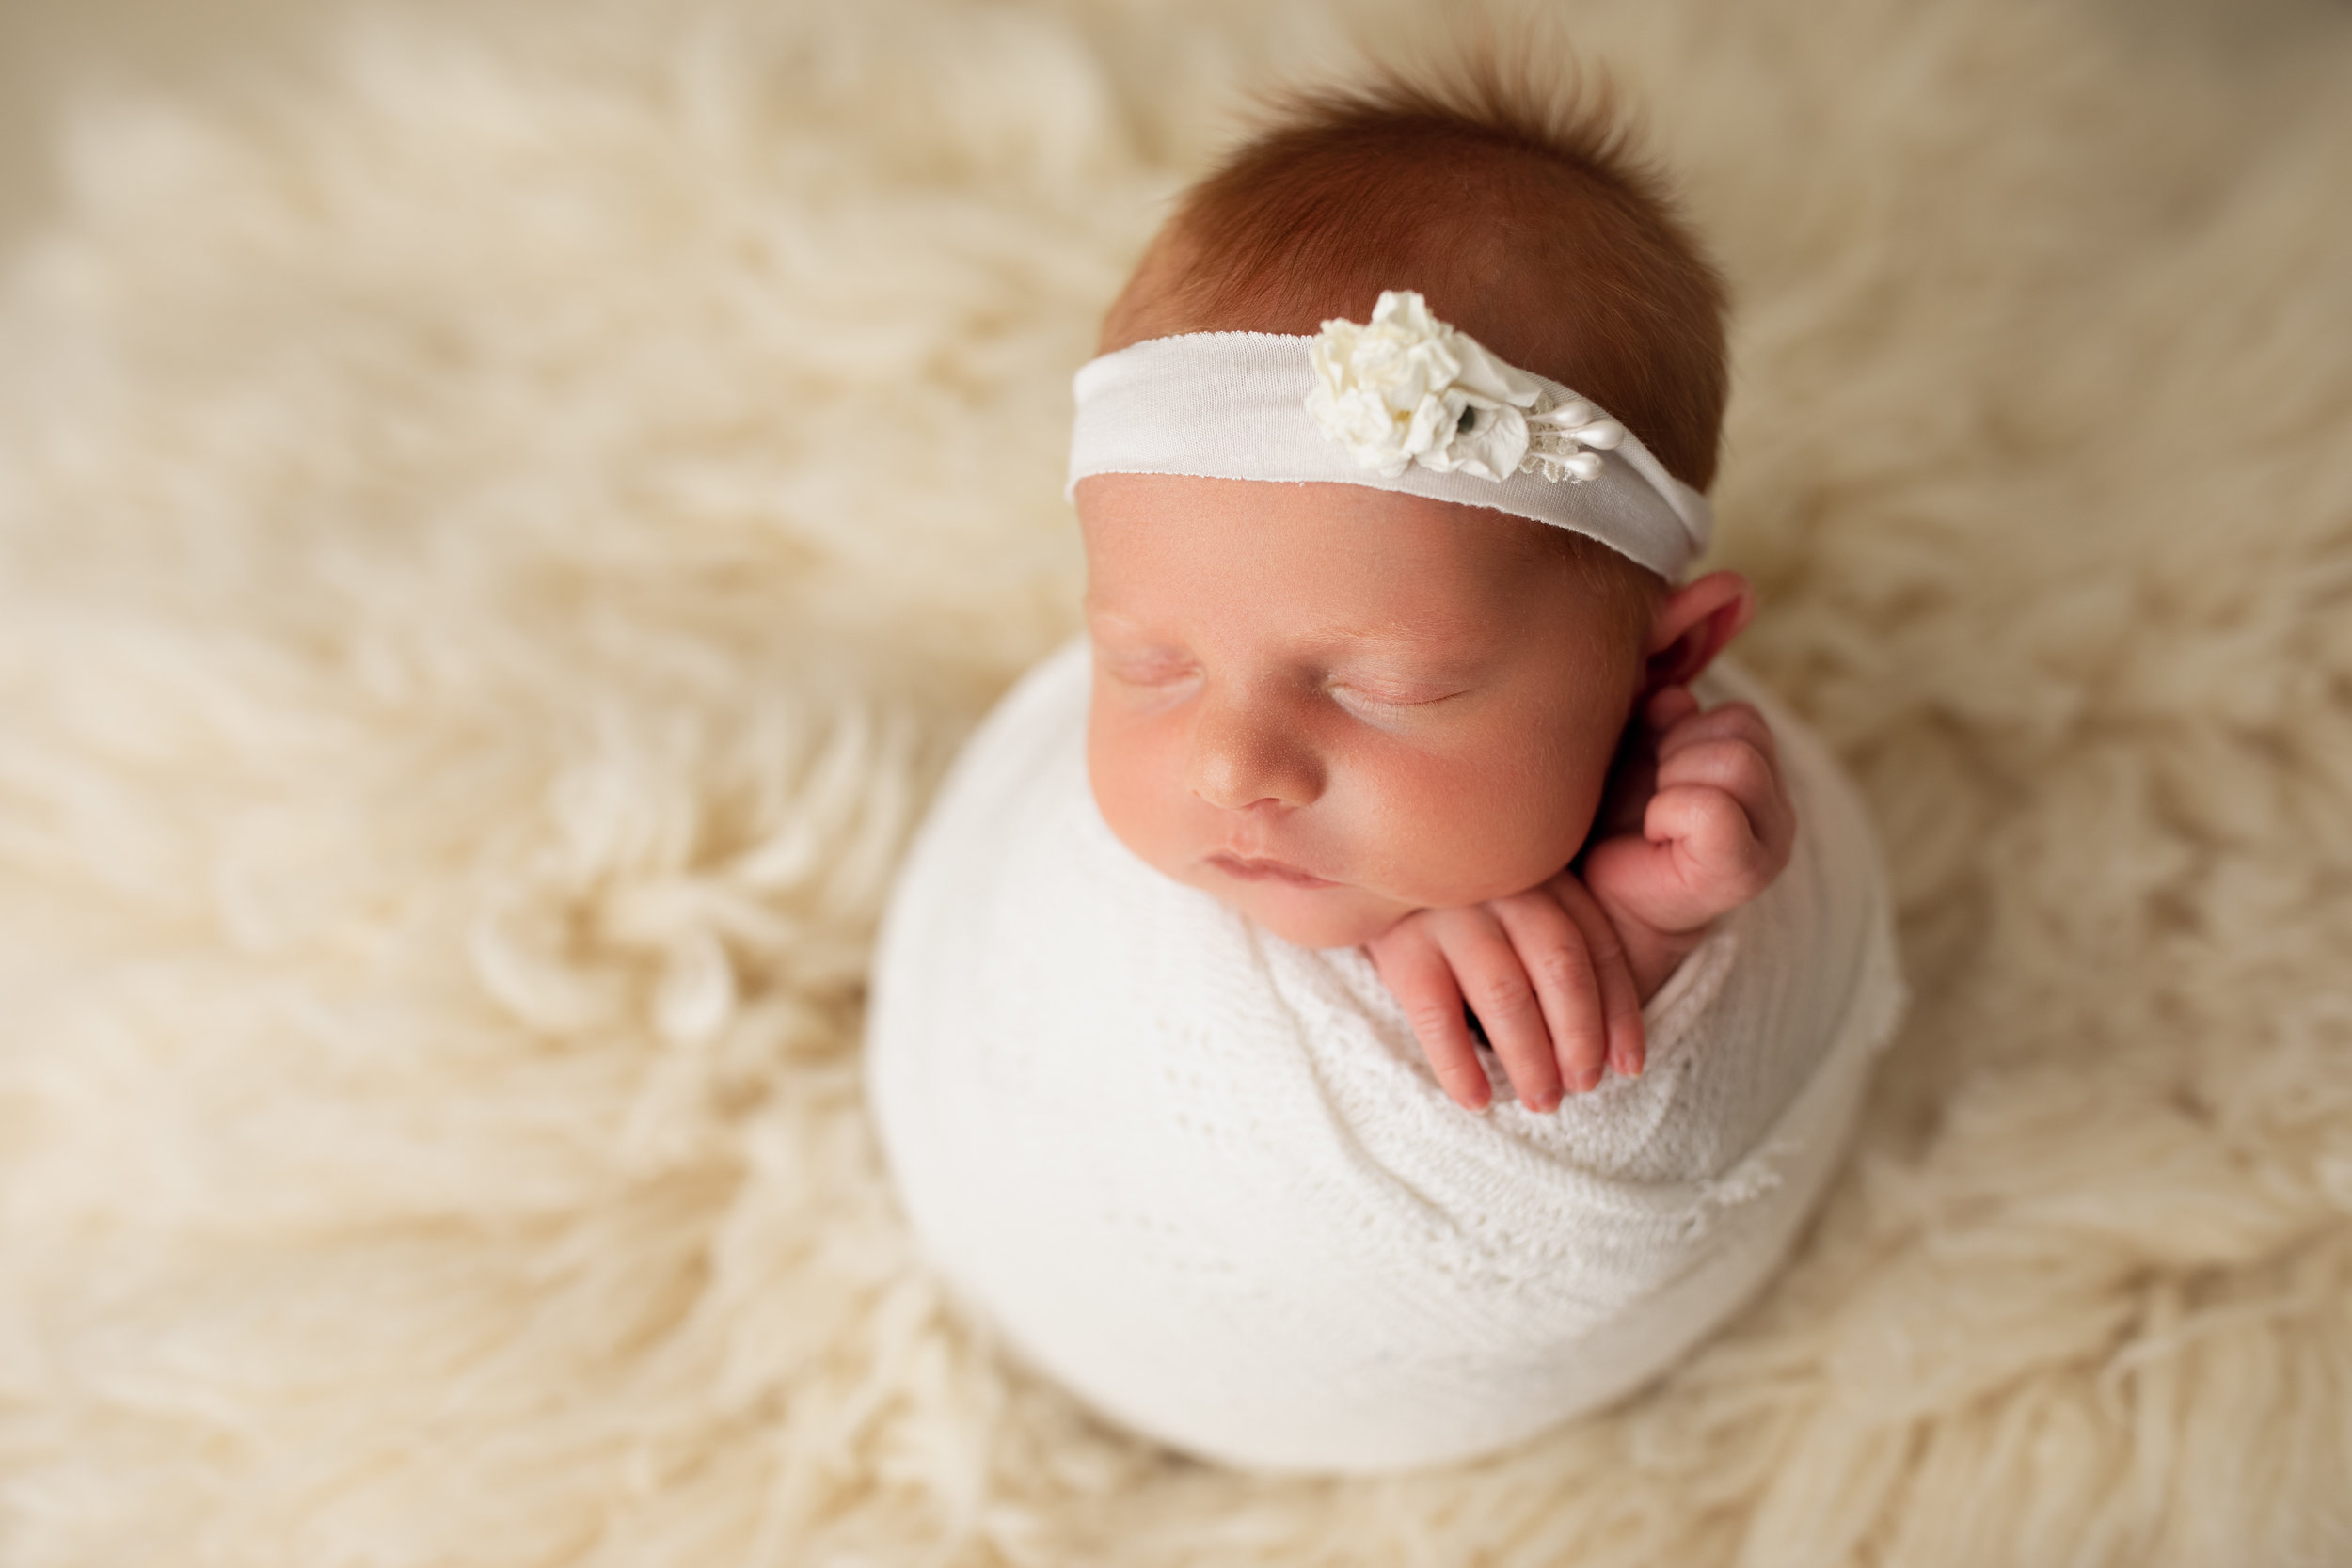 newborn baby during newborn photography session